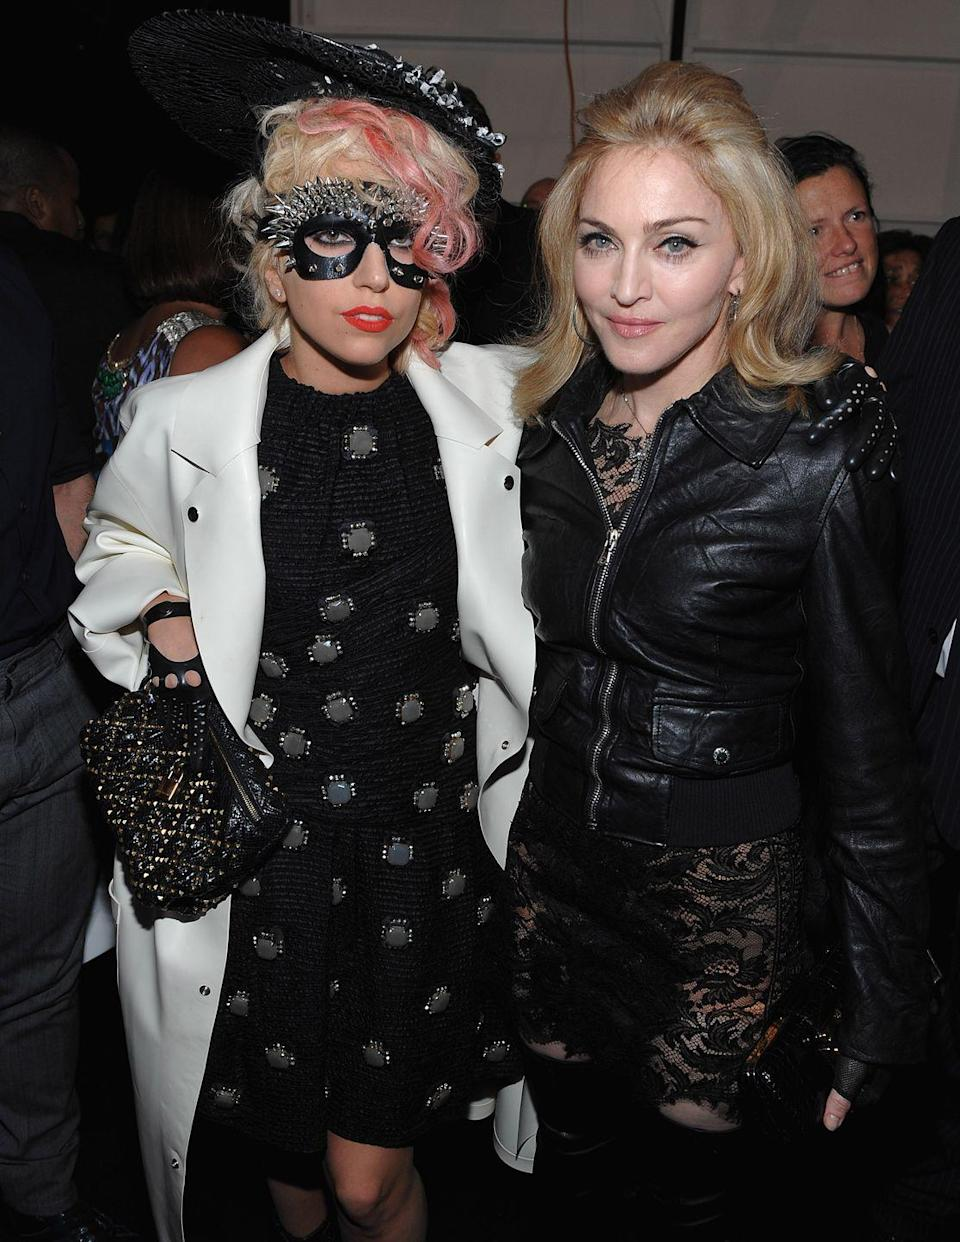 """<p>Rumors of a feud between the pop icons first started in 2011, when comparisons were drawn between Gaga's """"Born This Way"""" to Madonna's """"Express Yourself."""" Though Gaga denied any similarities, Madonna famously called Gaga's song """"reductive."""" Then, in 2015, <a href=""""https://www.rollingstone.com/music/music-news/madonna-fights-back-inside-rolling-stones-new-issue-104684/"""" rel=""""nofollow noopener"""" target=""""_blank"""" data-ylk=""""slk:Madonna revealed"""" class=""""link rapid-noclick-resp"""">Madonna revealed</a> that the only time she had an issue with Gaga was when she felt like she """"blatantly ripped off"""" her song. """"It's got nothing to do with 'she's taking my crown' or 'she's in some space of mine.' She has her thing,"""" she said. """"I do think she's a very talented singer and songwriter. It was just that one issue.""""<br></p>"""